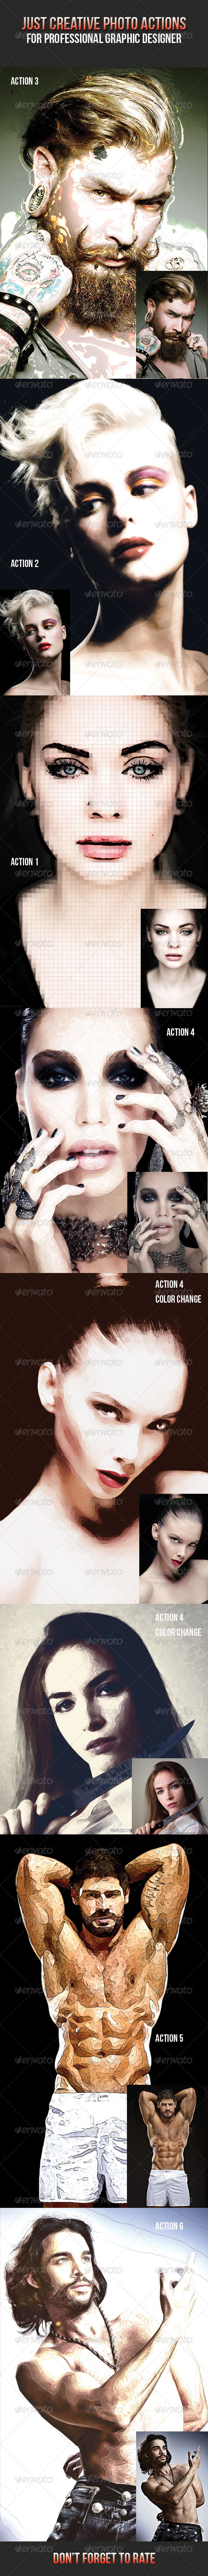 GraphicRiver Just Creative Photo Actions 7836114